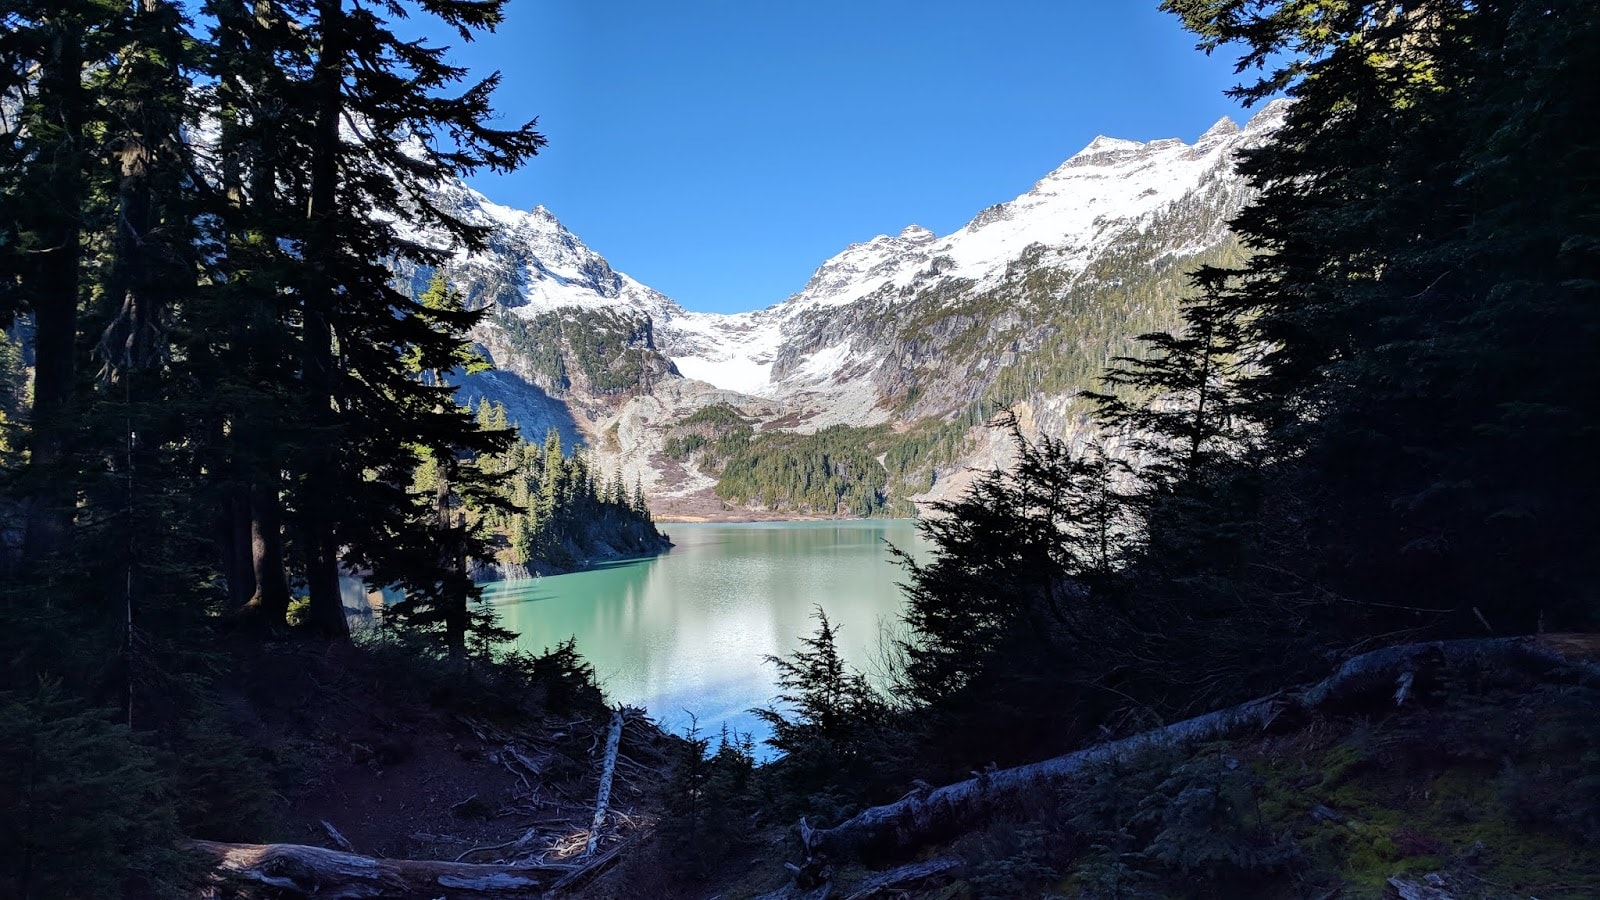 The turquoise water of Blanca Lake and the glaciers in the background